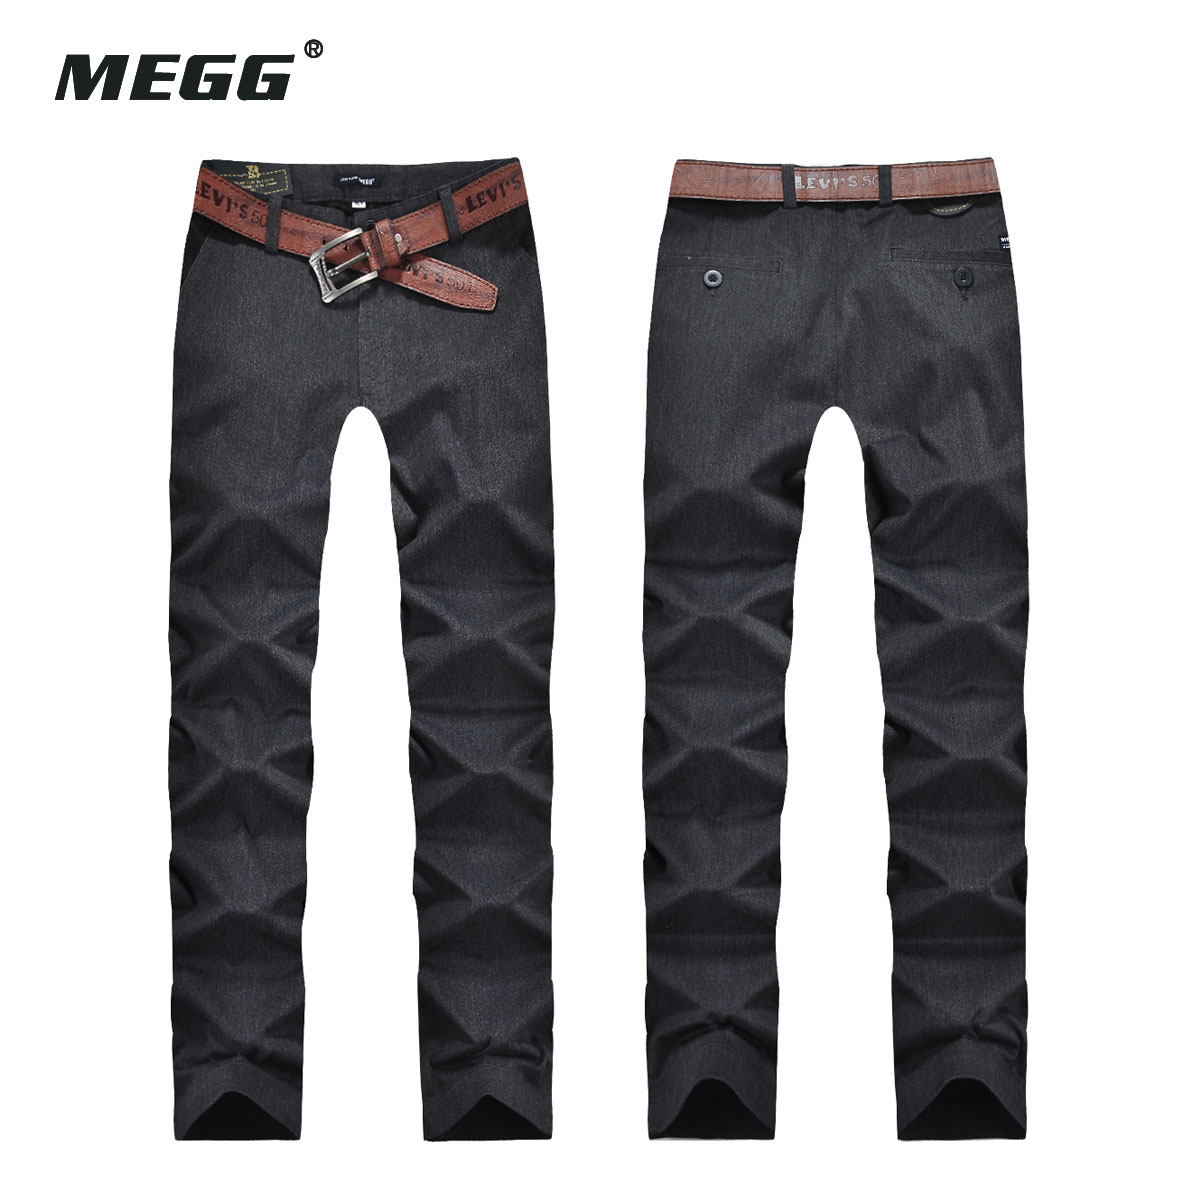 megg Men's khaki pants men's casual pants Slim trousers narrow pants male 2 color optional